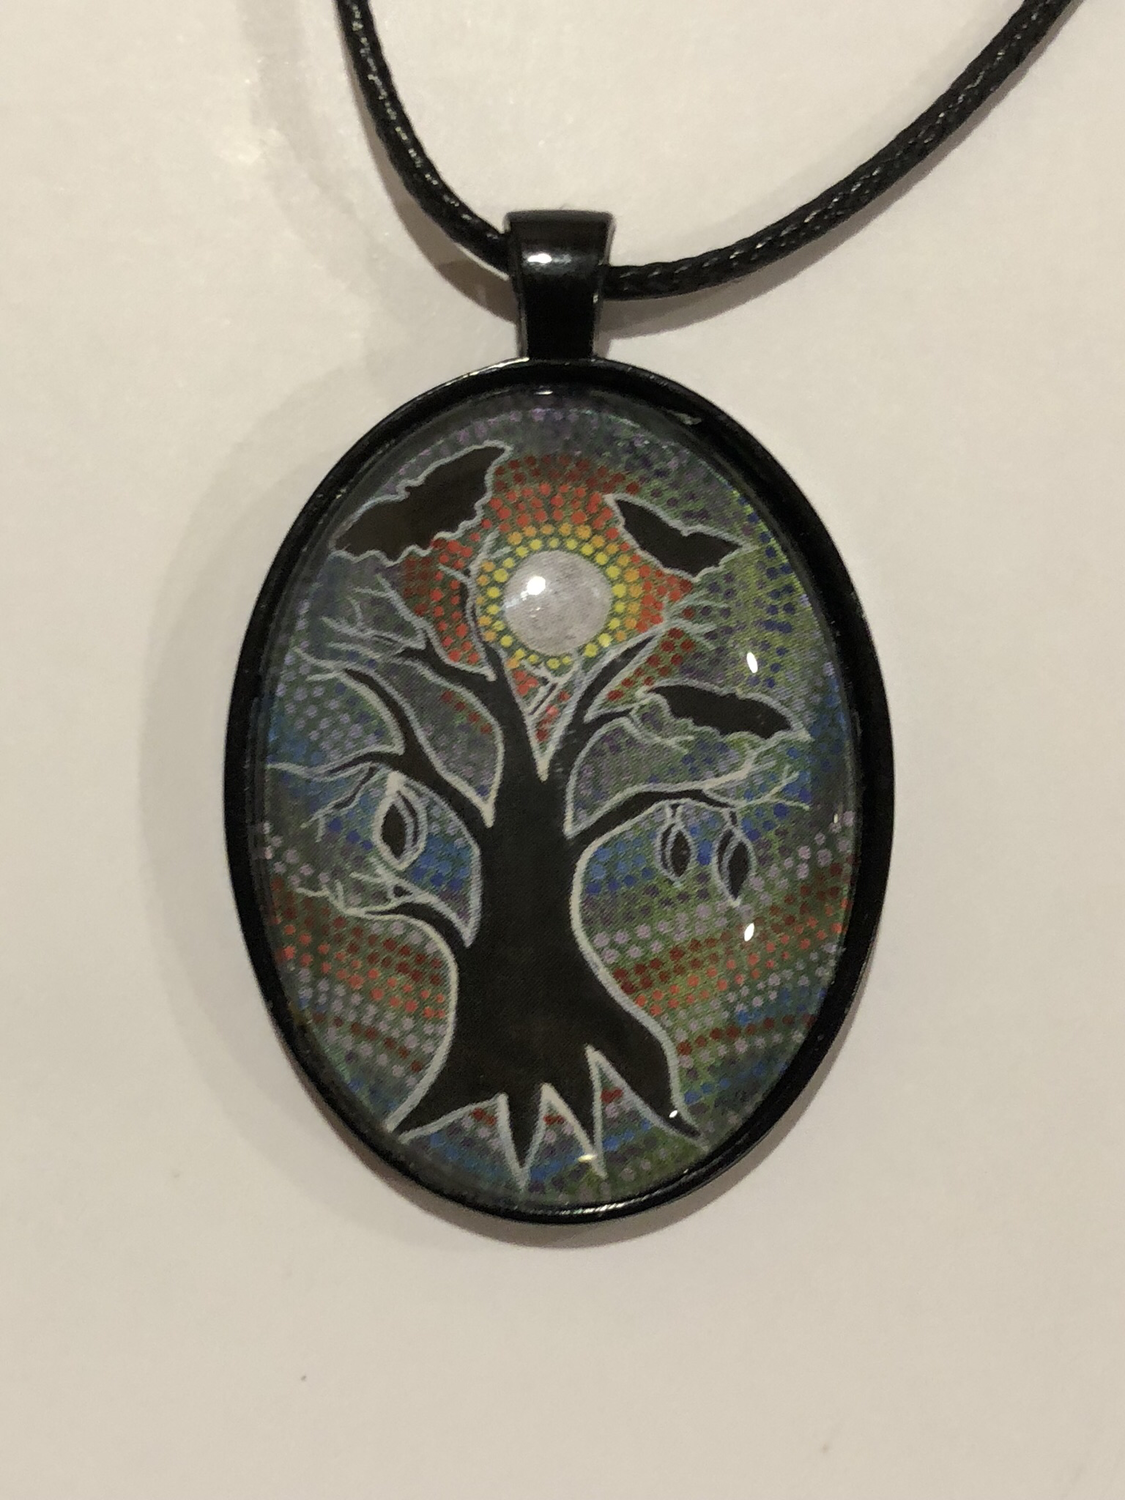 Bat Island Glass art pendant